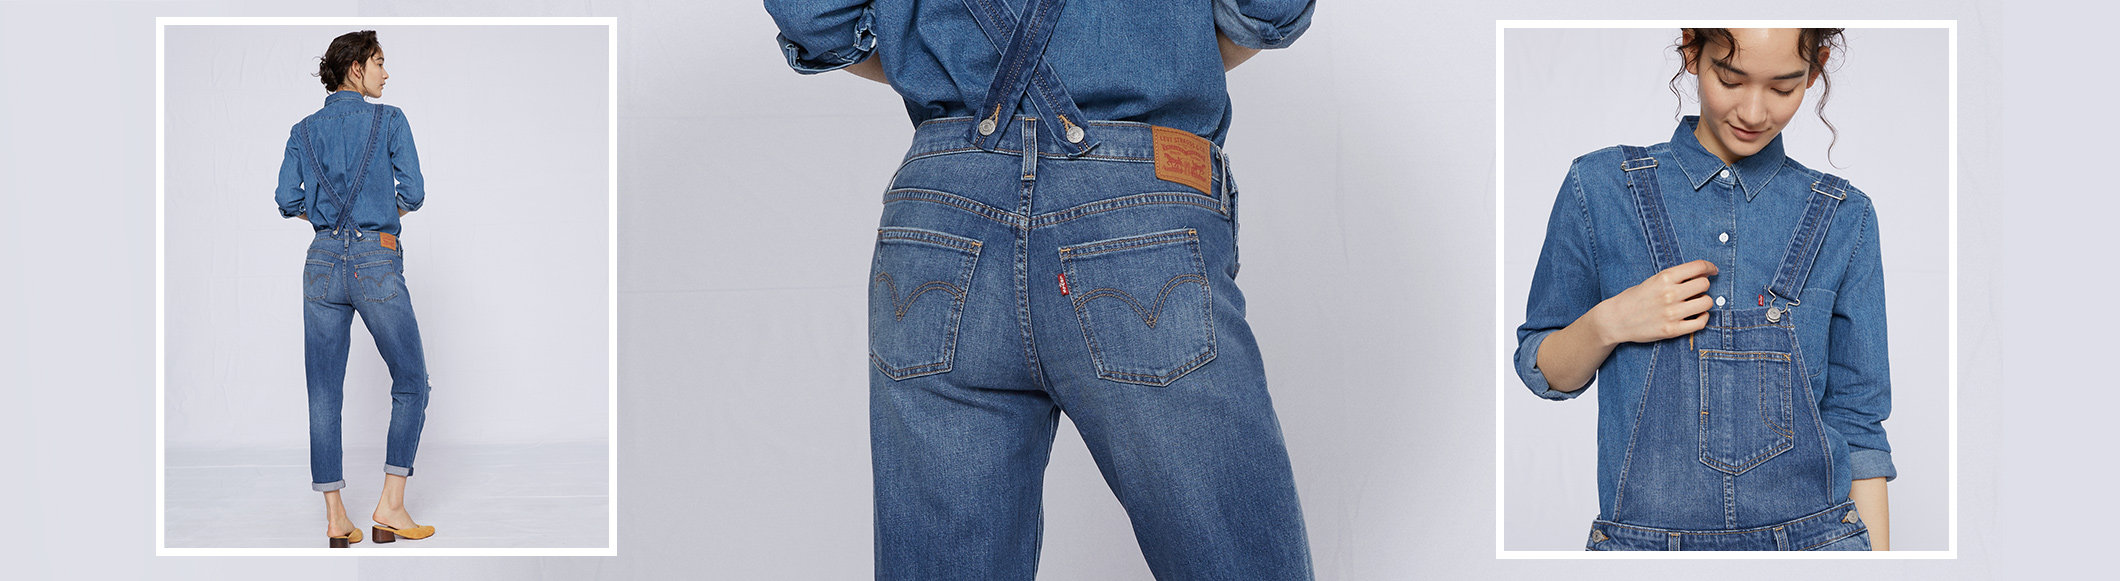 083a7e97372f Denim Overalls - Shop Jean Overalls for Women